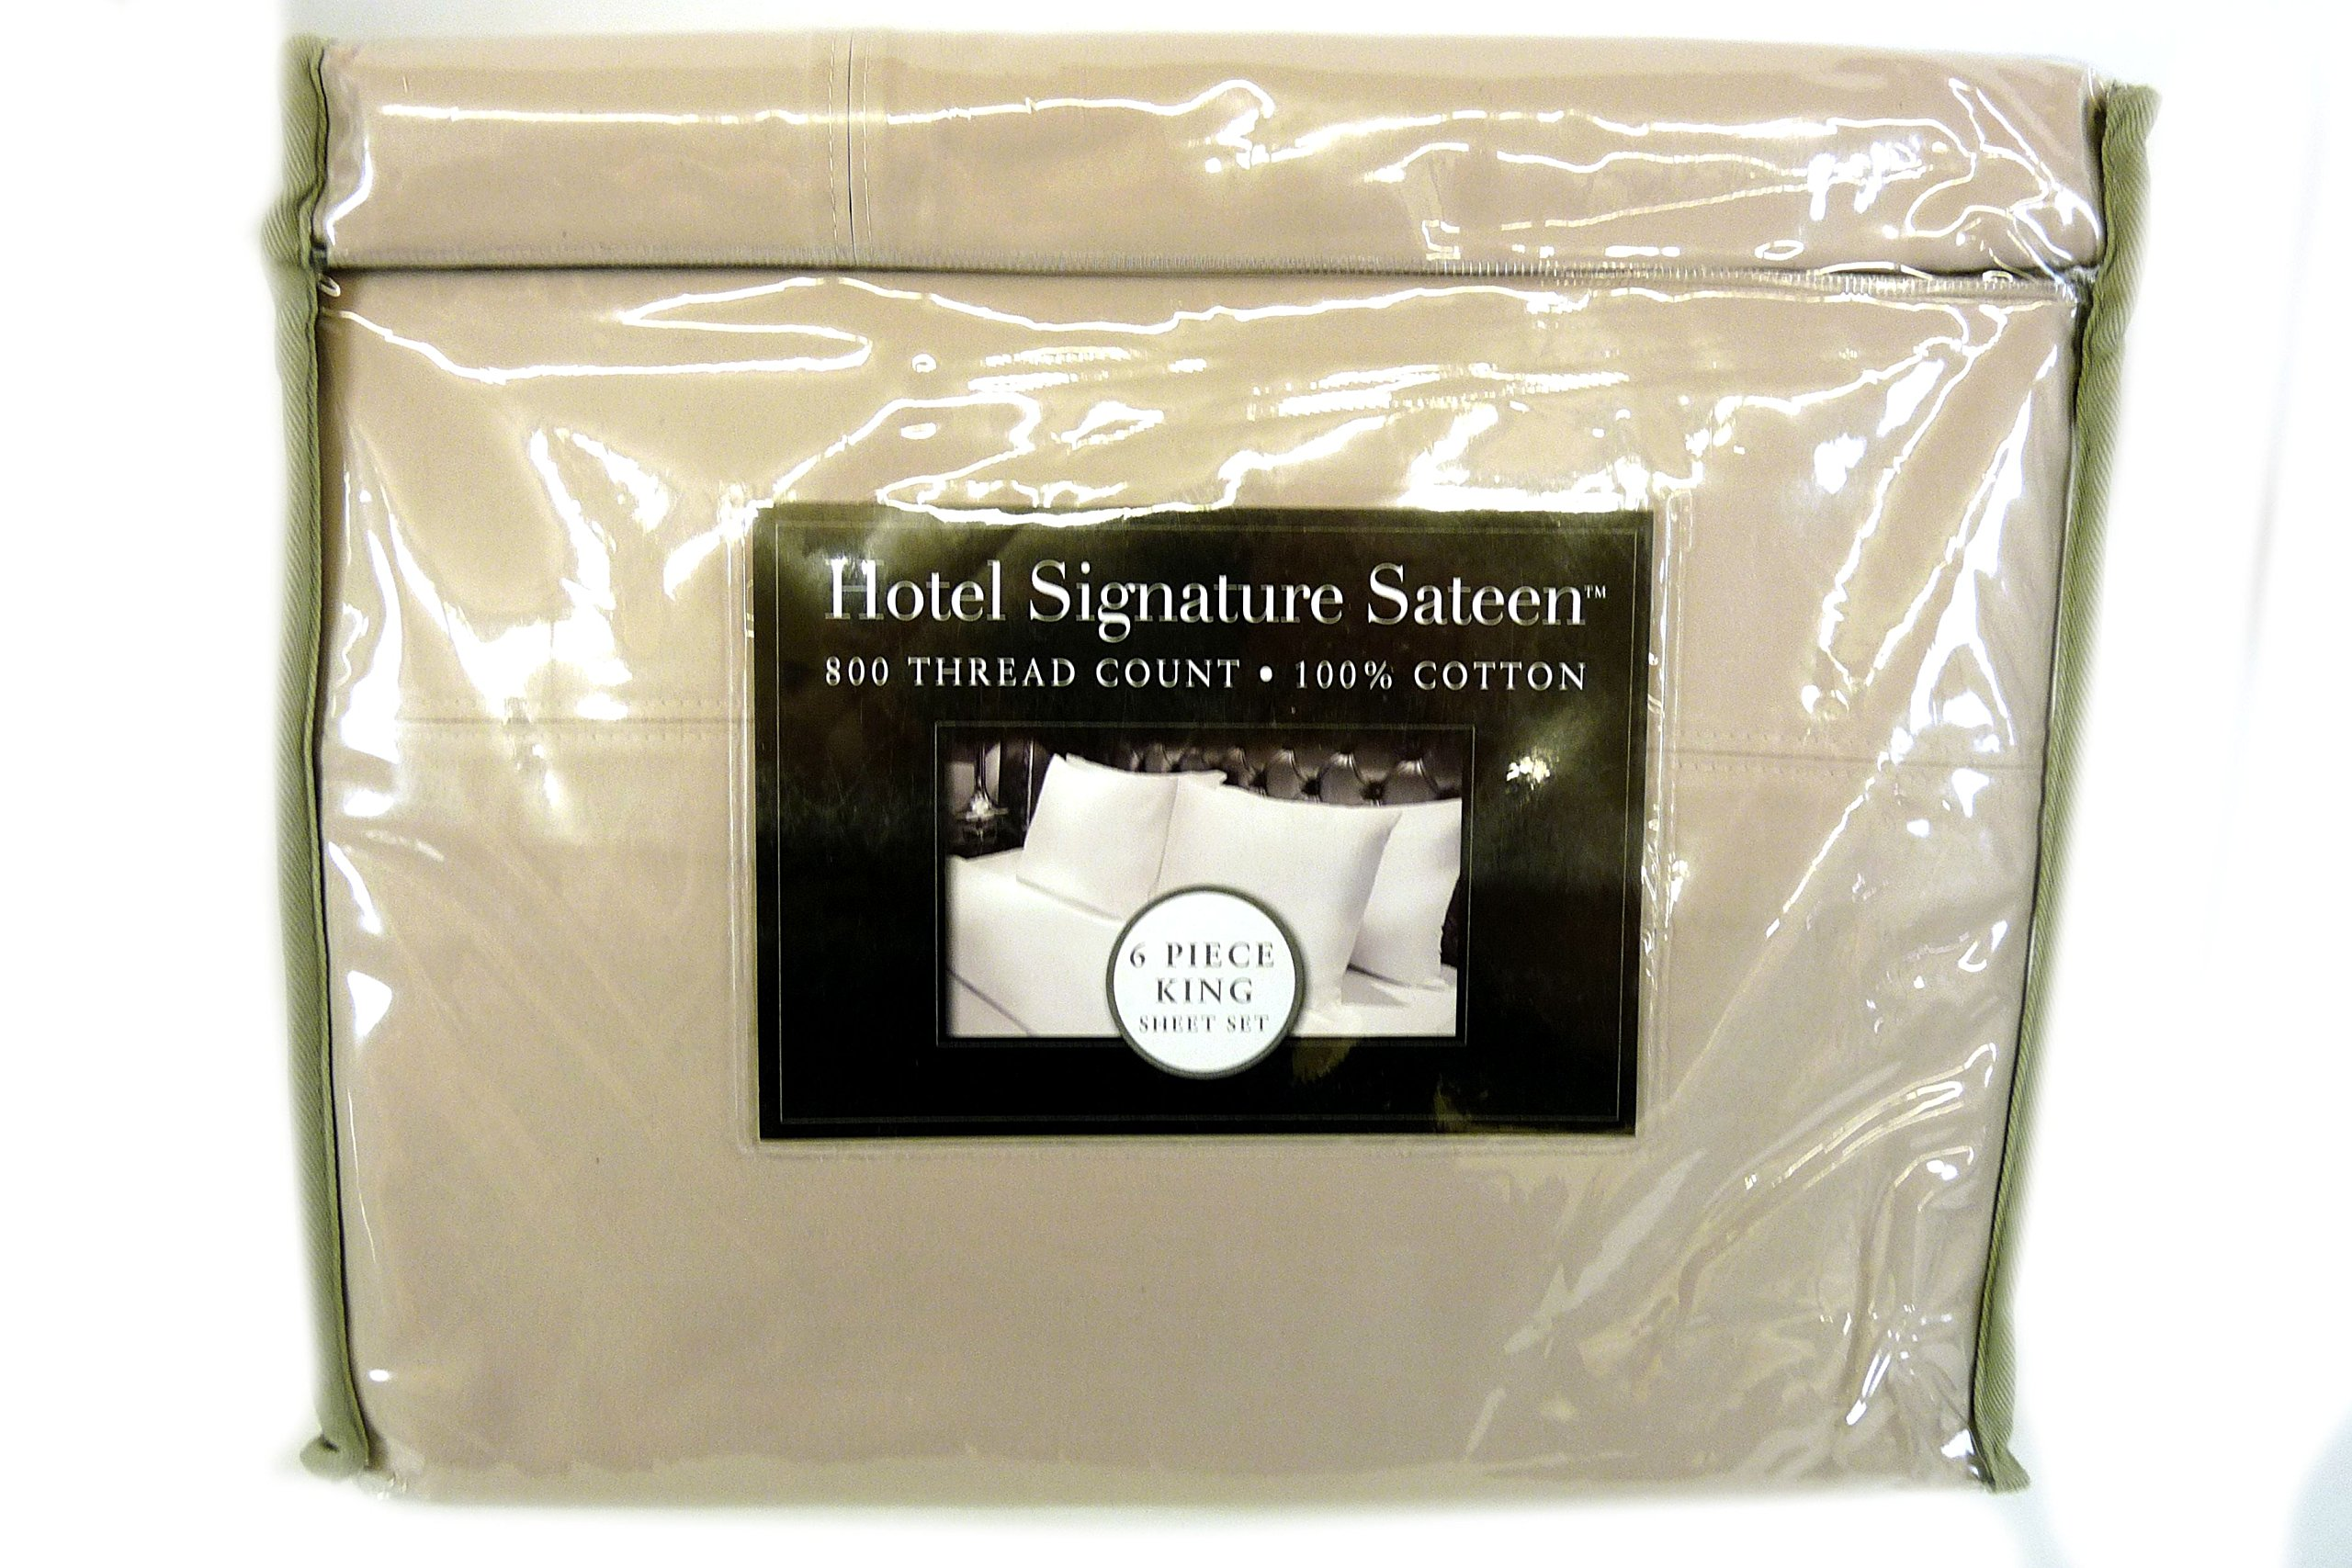 Hotel Signature Queen Size 6 Piece Grey 800 Thread count 100% Cotton Sheet set